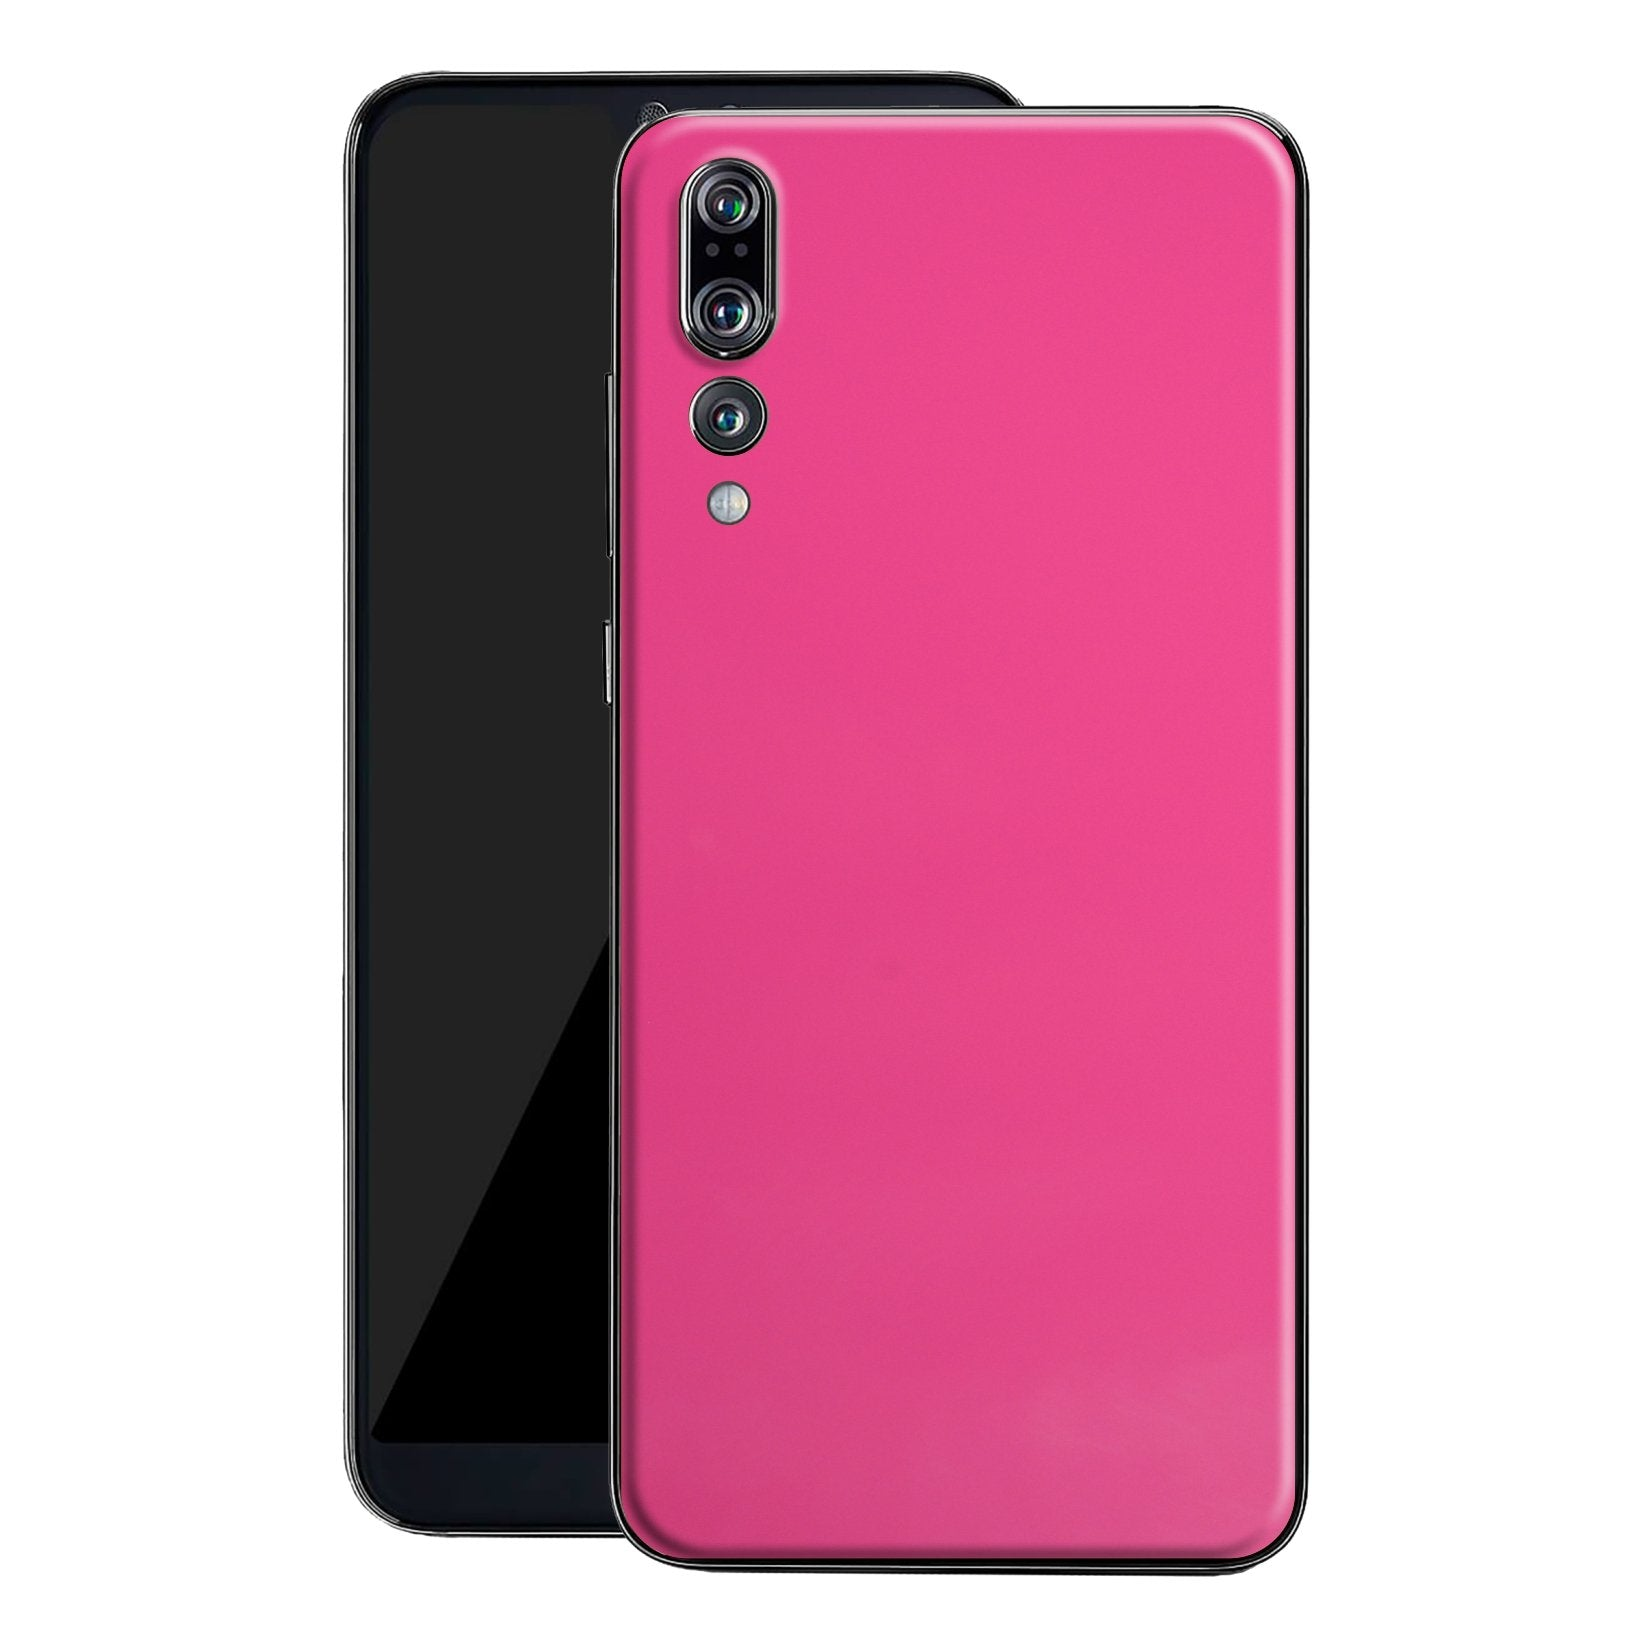 Huawei P20 PRO Deep Red Glossy Gloss Finish Skin, Decal, Wrap, Protector, Cover by EasySkinz | EasySkinz.com